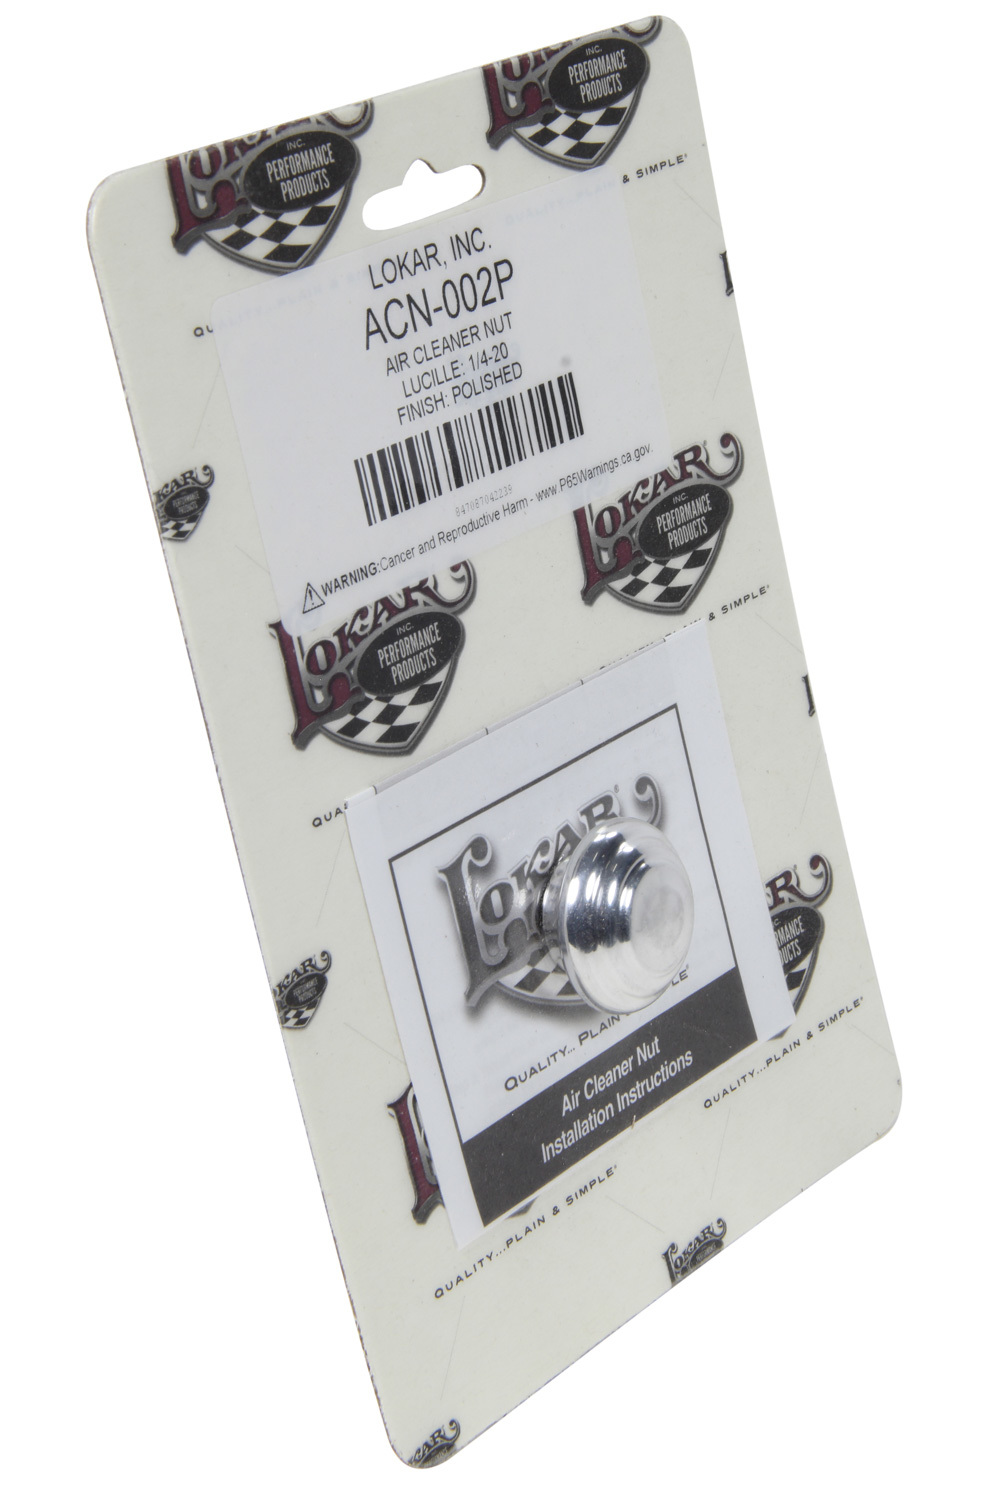 Lokar ACN-002P Air Cleaner Nut, Lucille Style, 1/4-20 in Threads, O-Ring, Aluminum, Polished, Each